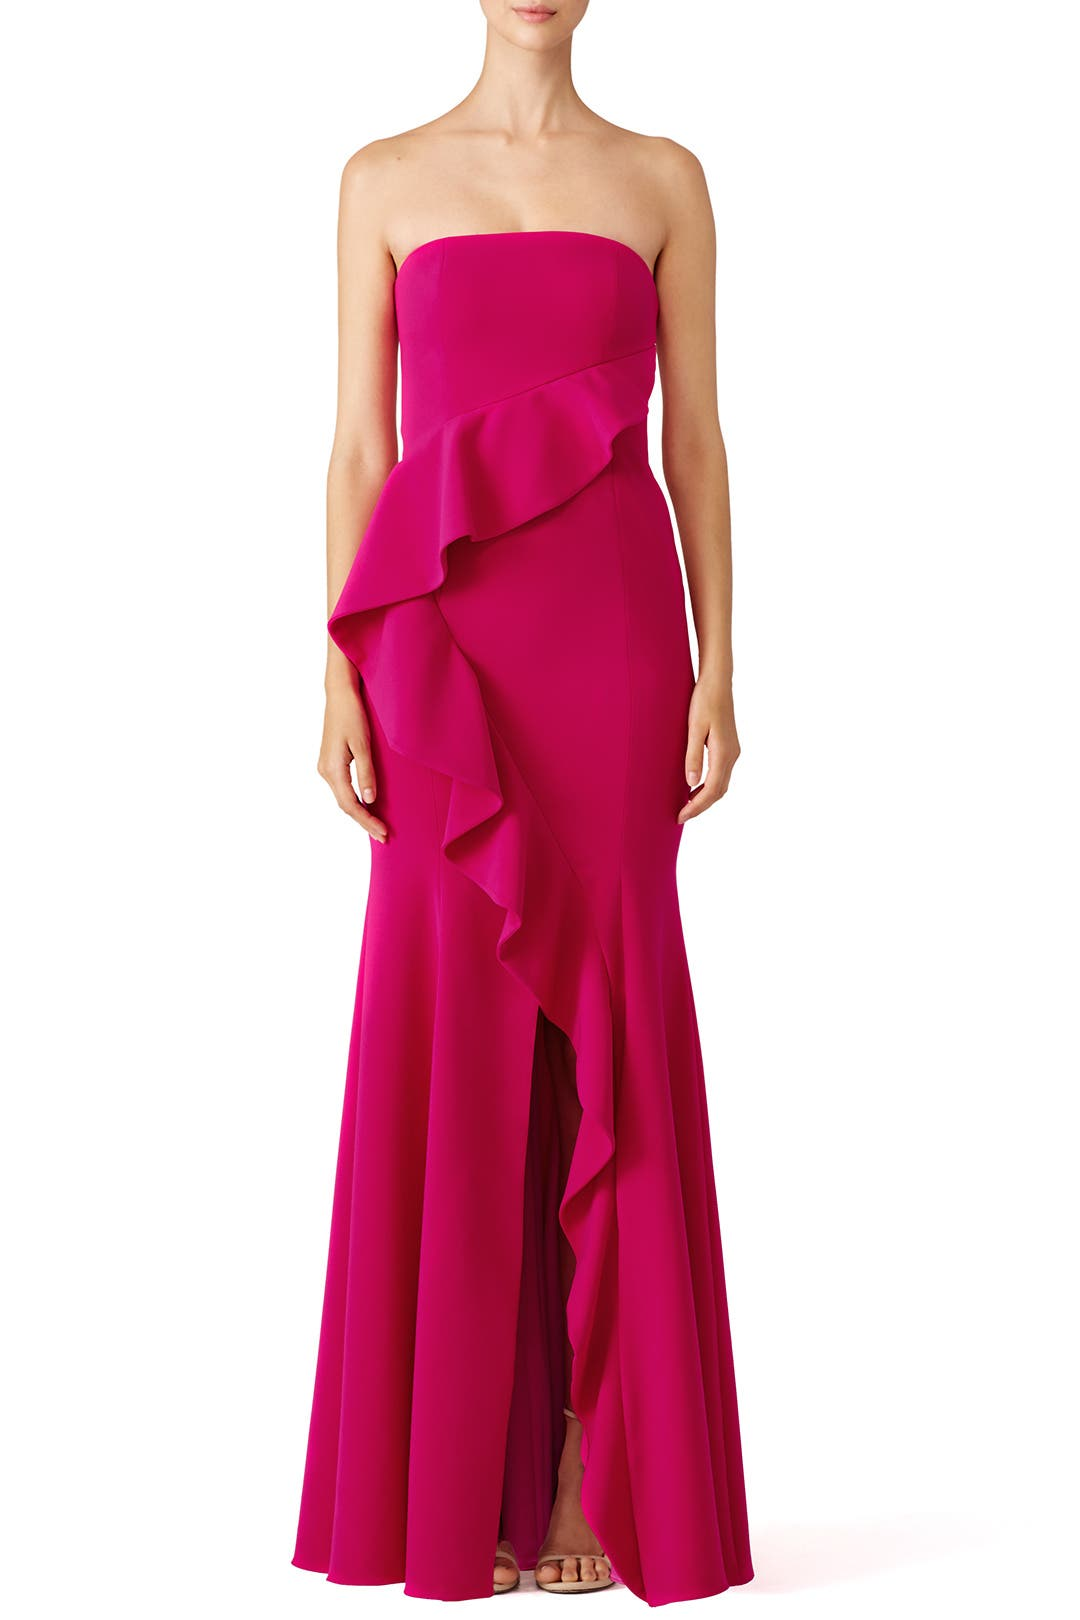 Dresses  Brand Jay Godfrey Great selection and prices for Wedding ... d3fef822d